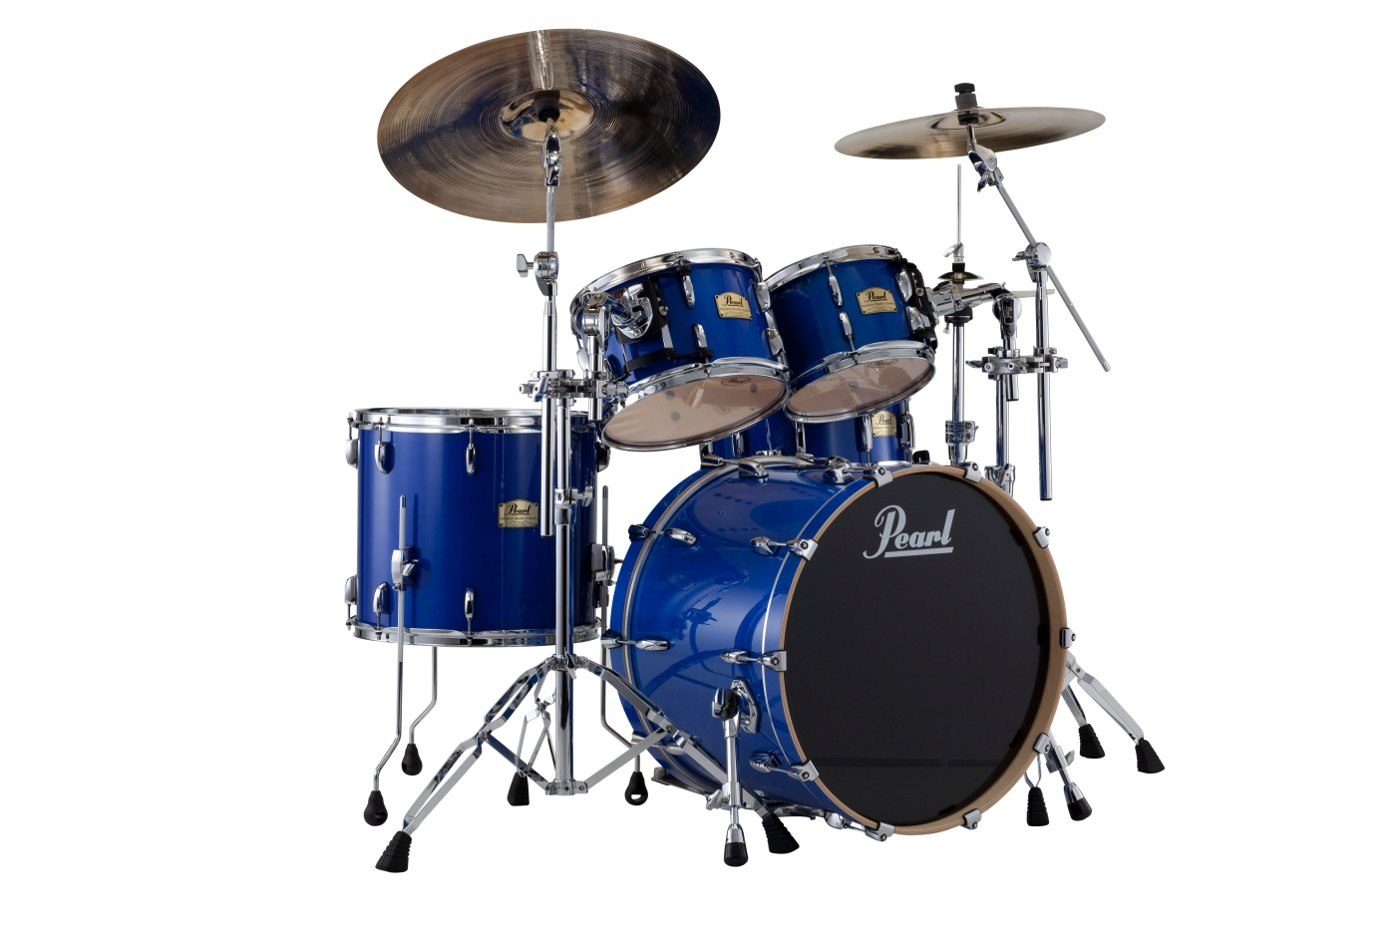 Pearl Drums SSC924XUP/C/113 4-Piece Session Studio Classic Shell Pack, Sheer Blue Finish SSC924XUP/C/113